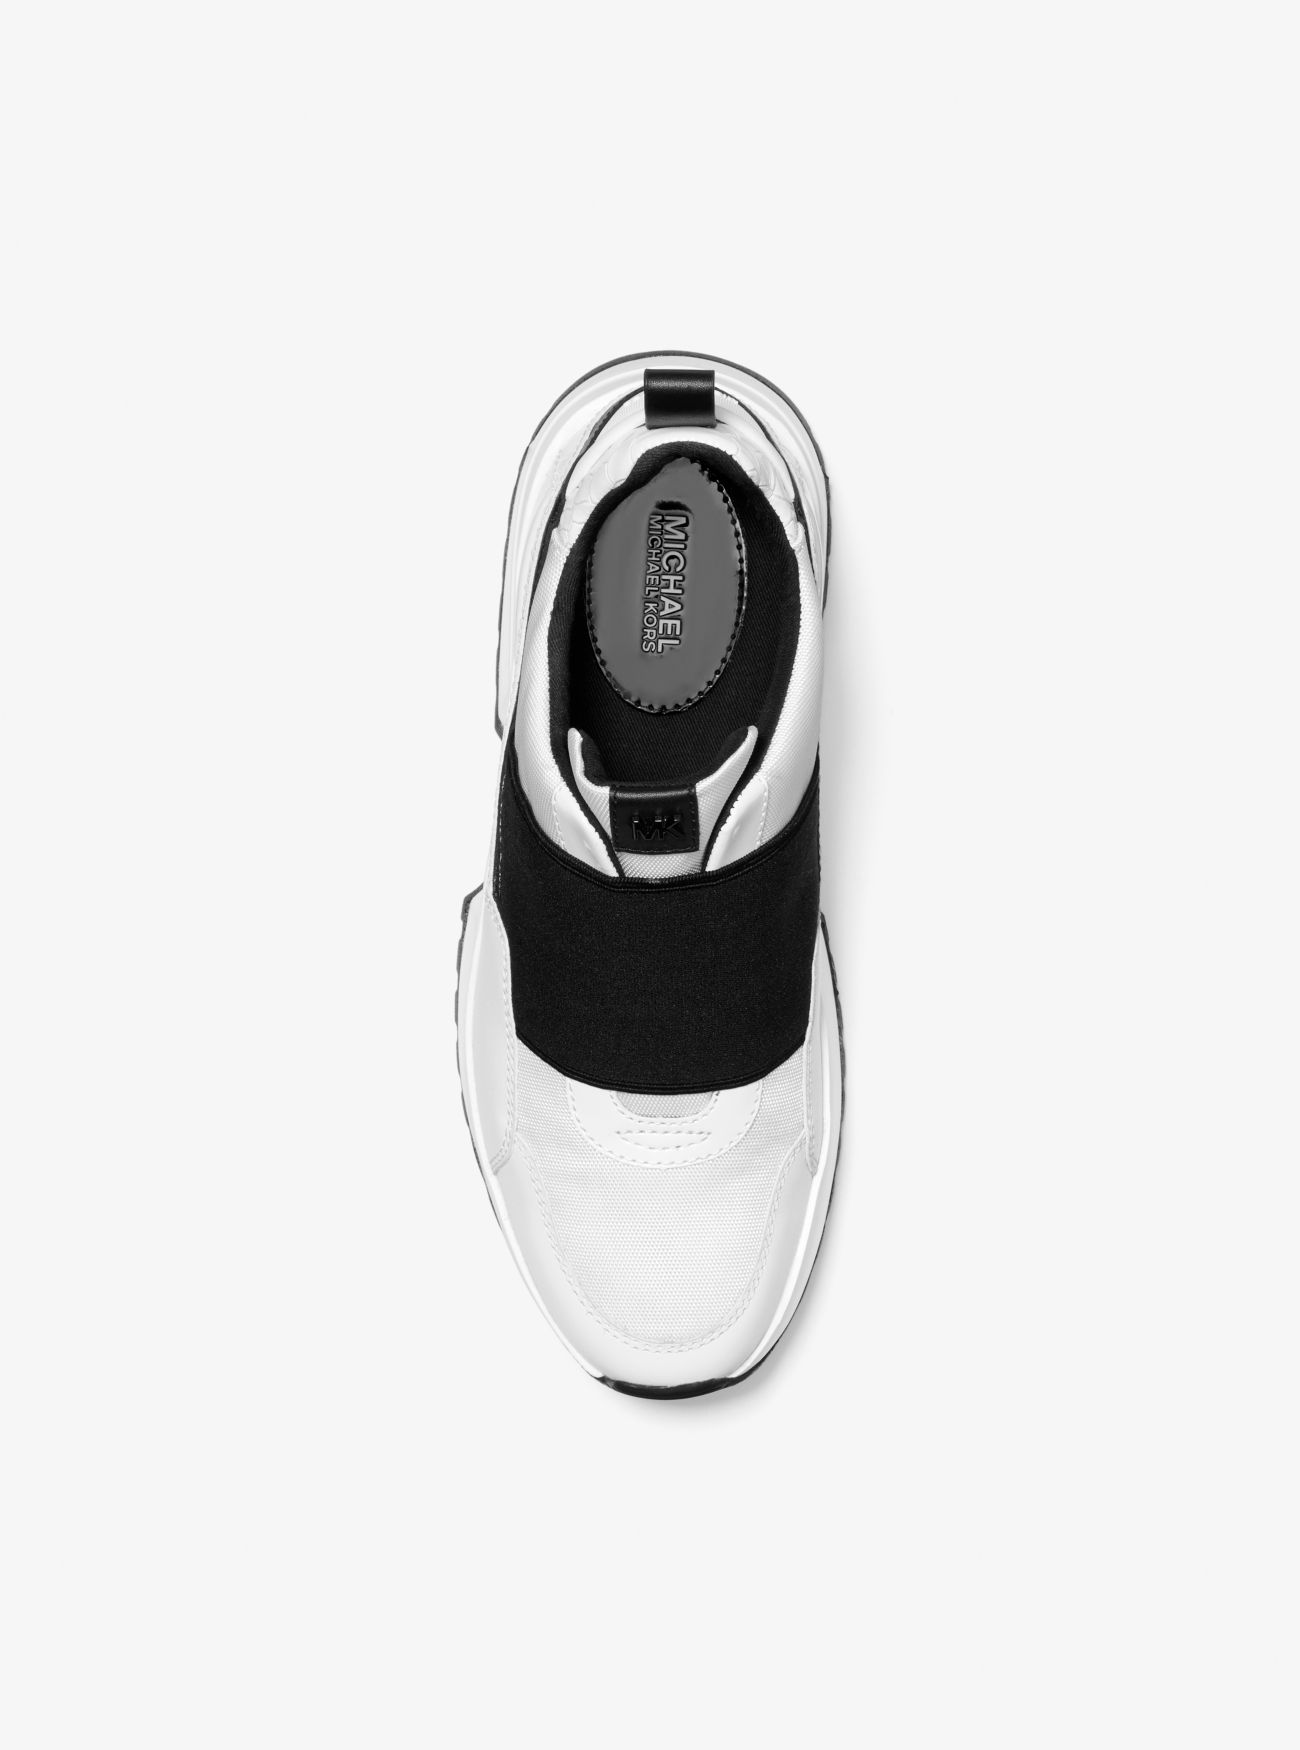 Cosmo Canvas and Snake-Embossed Leather Slip-On Trainer